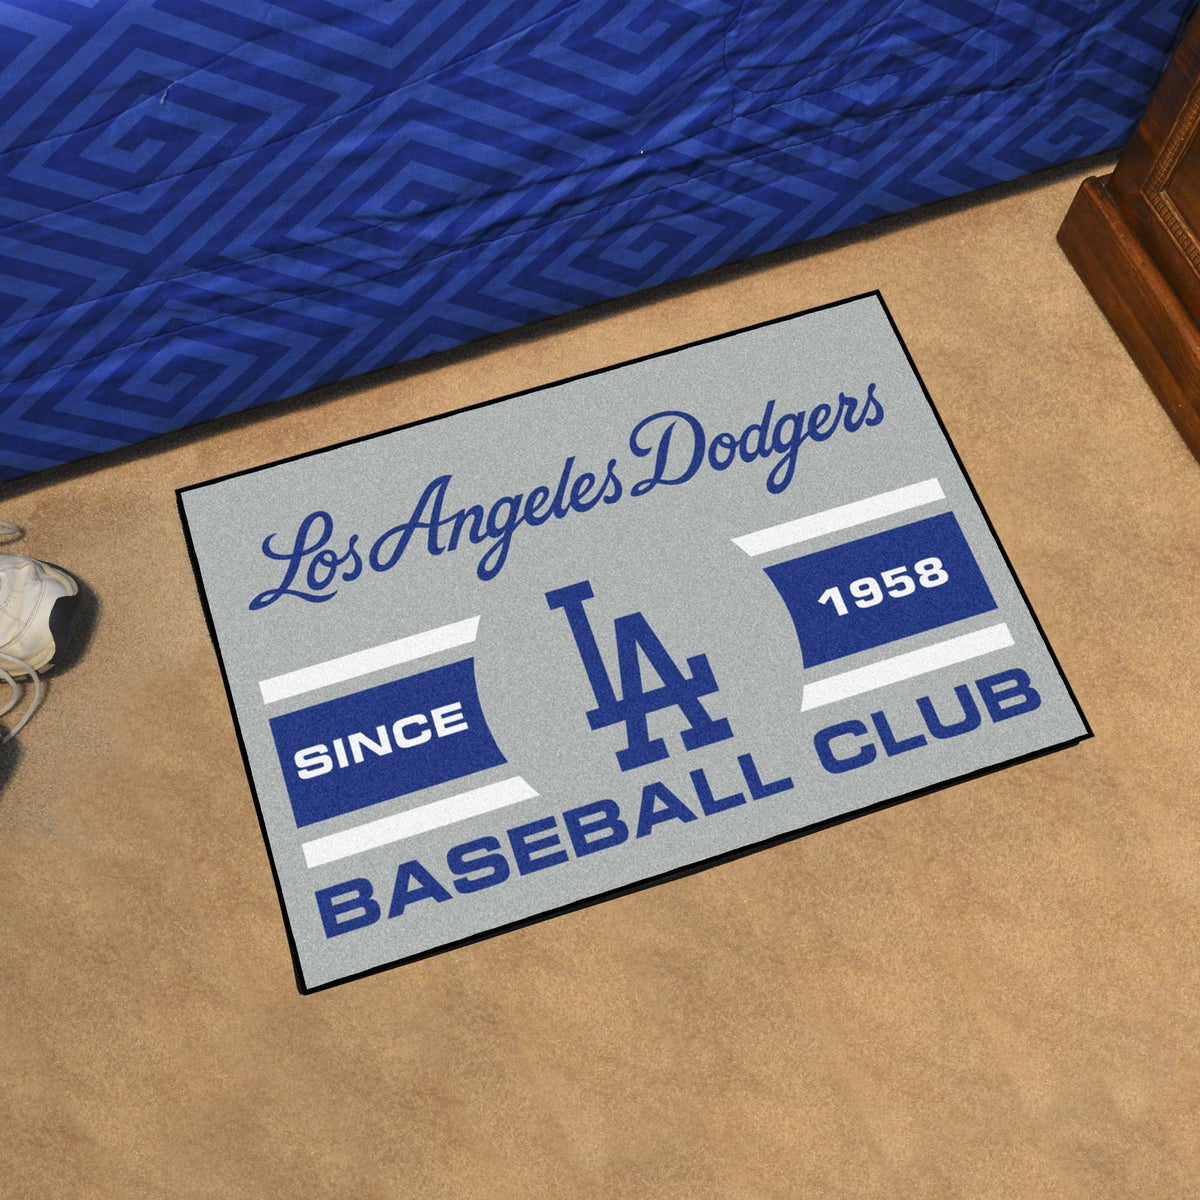 MLB - Starter Mat MLB Mats, Rectangular Mats, Starter Mat, MLB, Home Fan Mats Los Angeles Dodgers 4